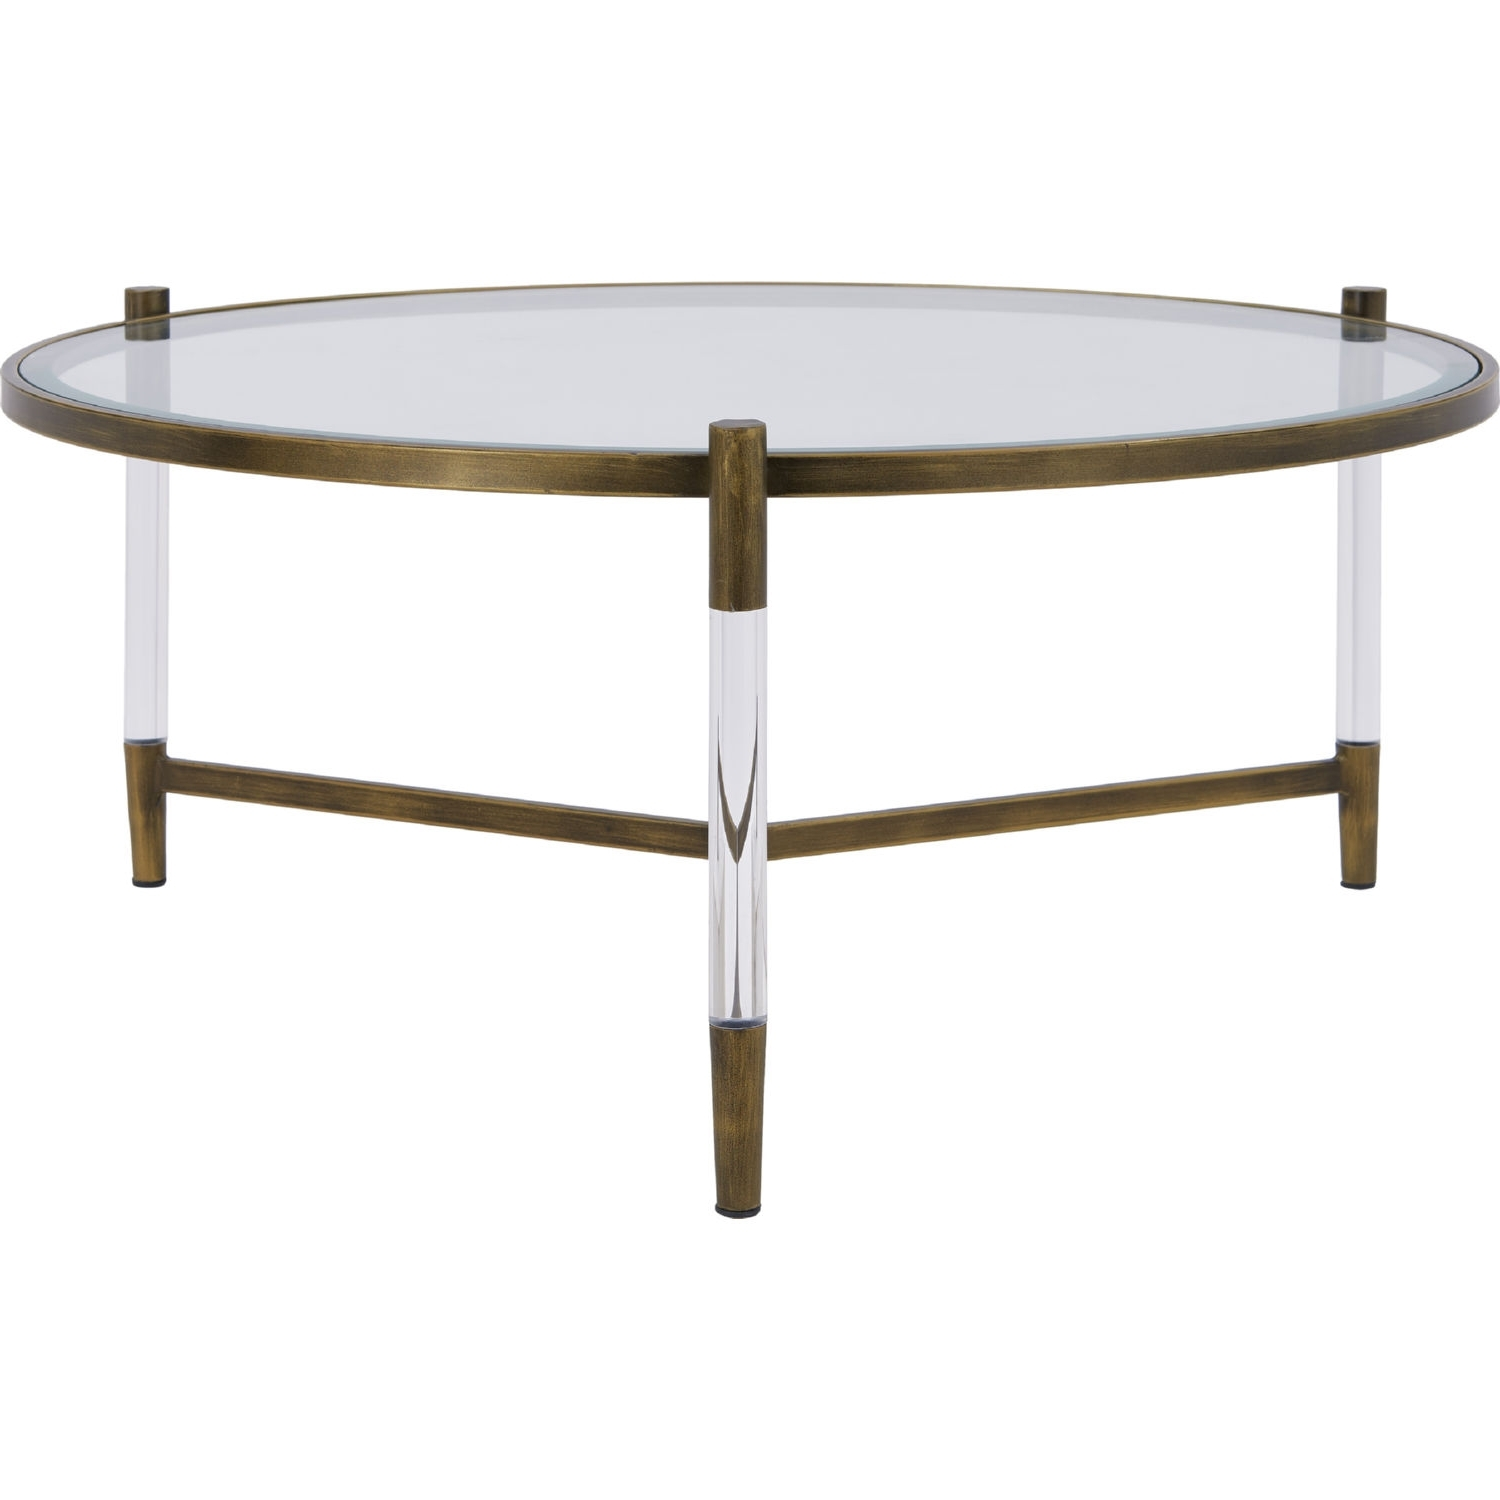 New Pacific Direct 1600028 Amaris Coffee Table In Acrylic, Brushed Within Latest Acrylic & Brushed Brass Coffee Tables (View 19 of 20)